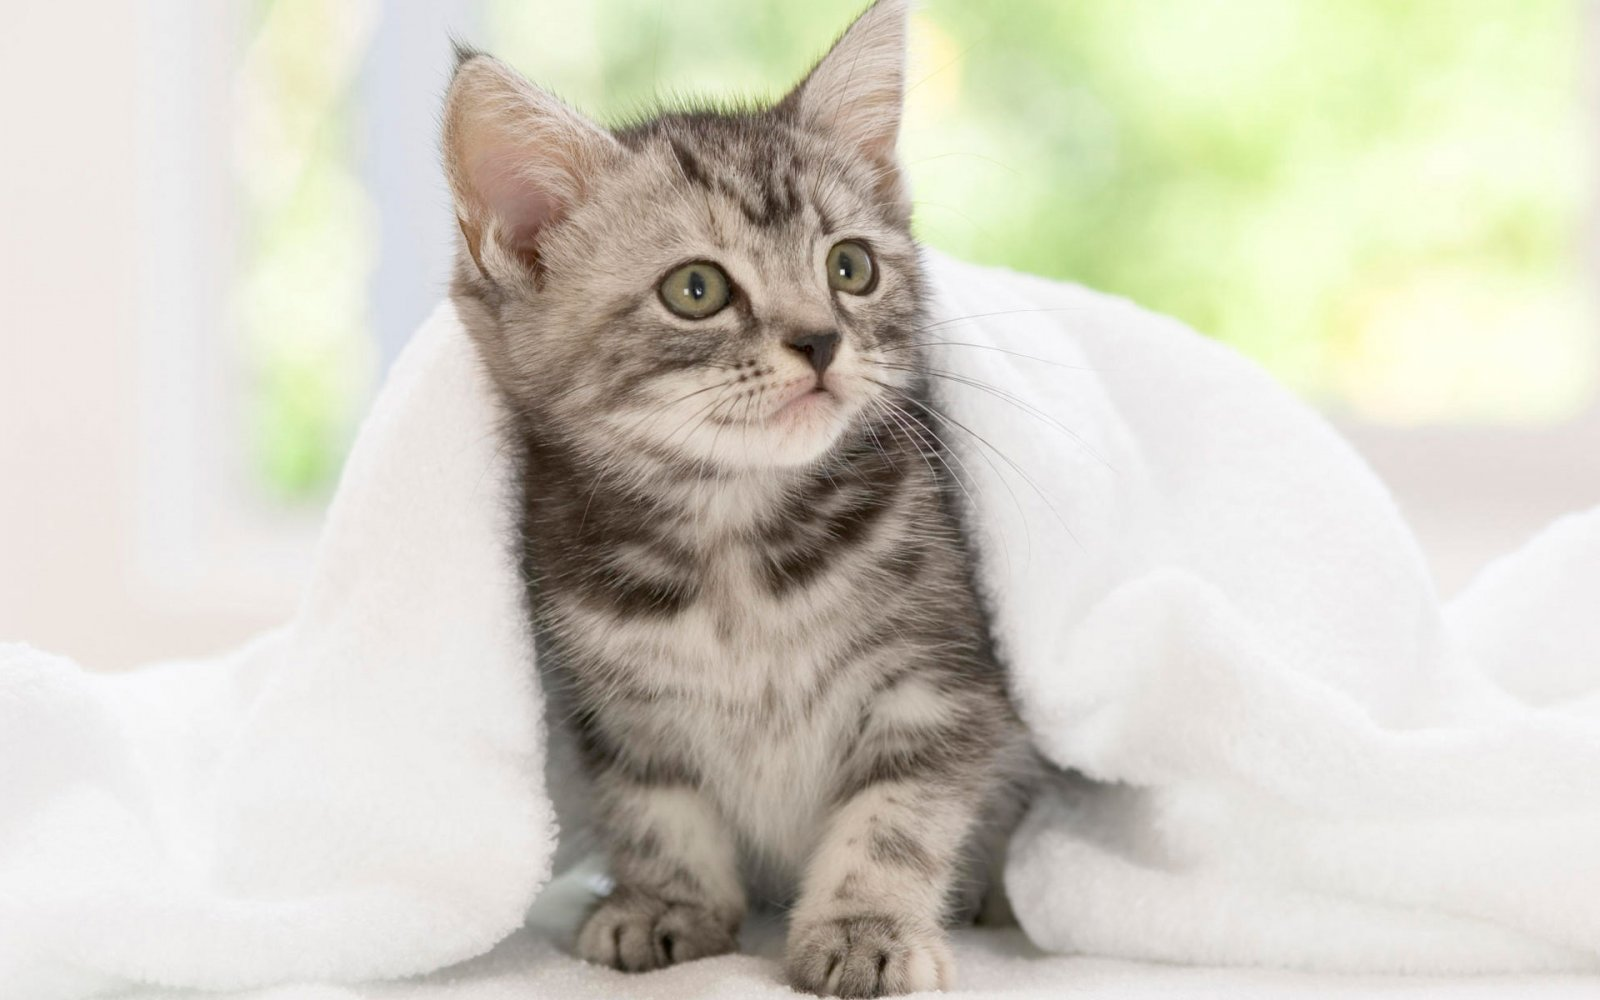 Hd Pictures Of Cute Animals: Gato American Wirehair. MundoGatos.com